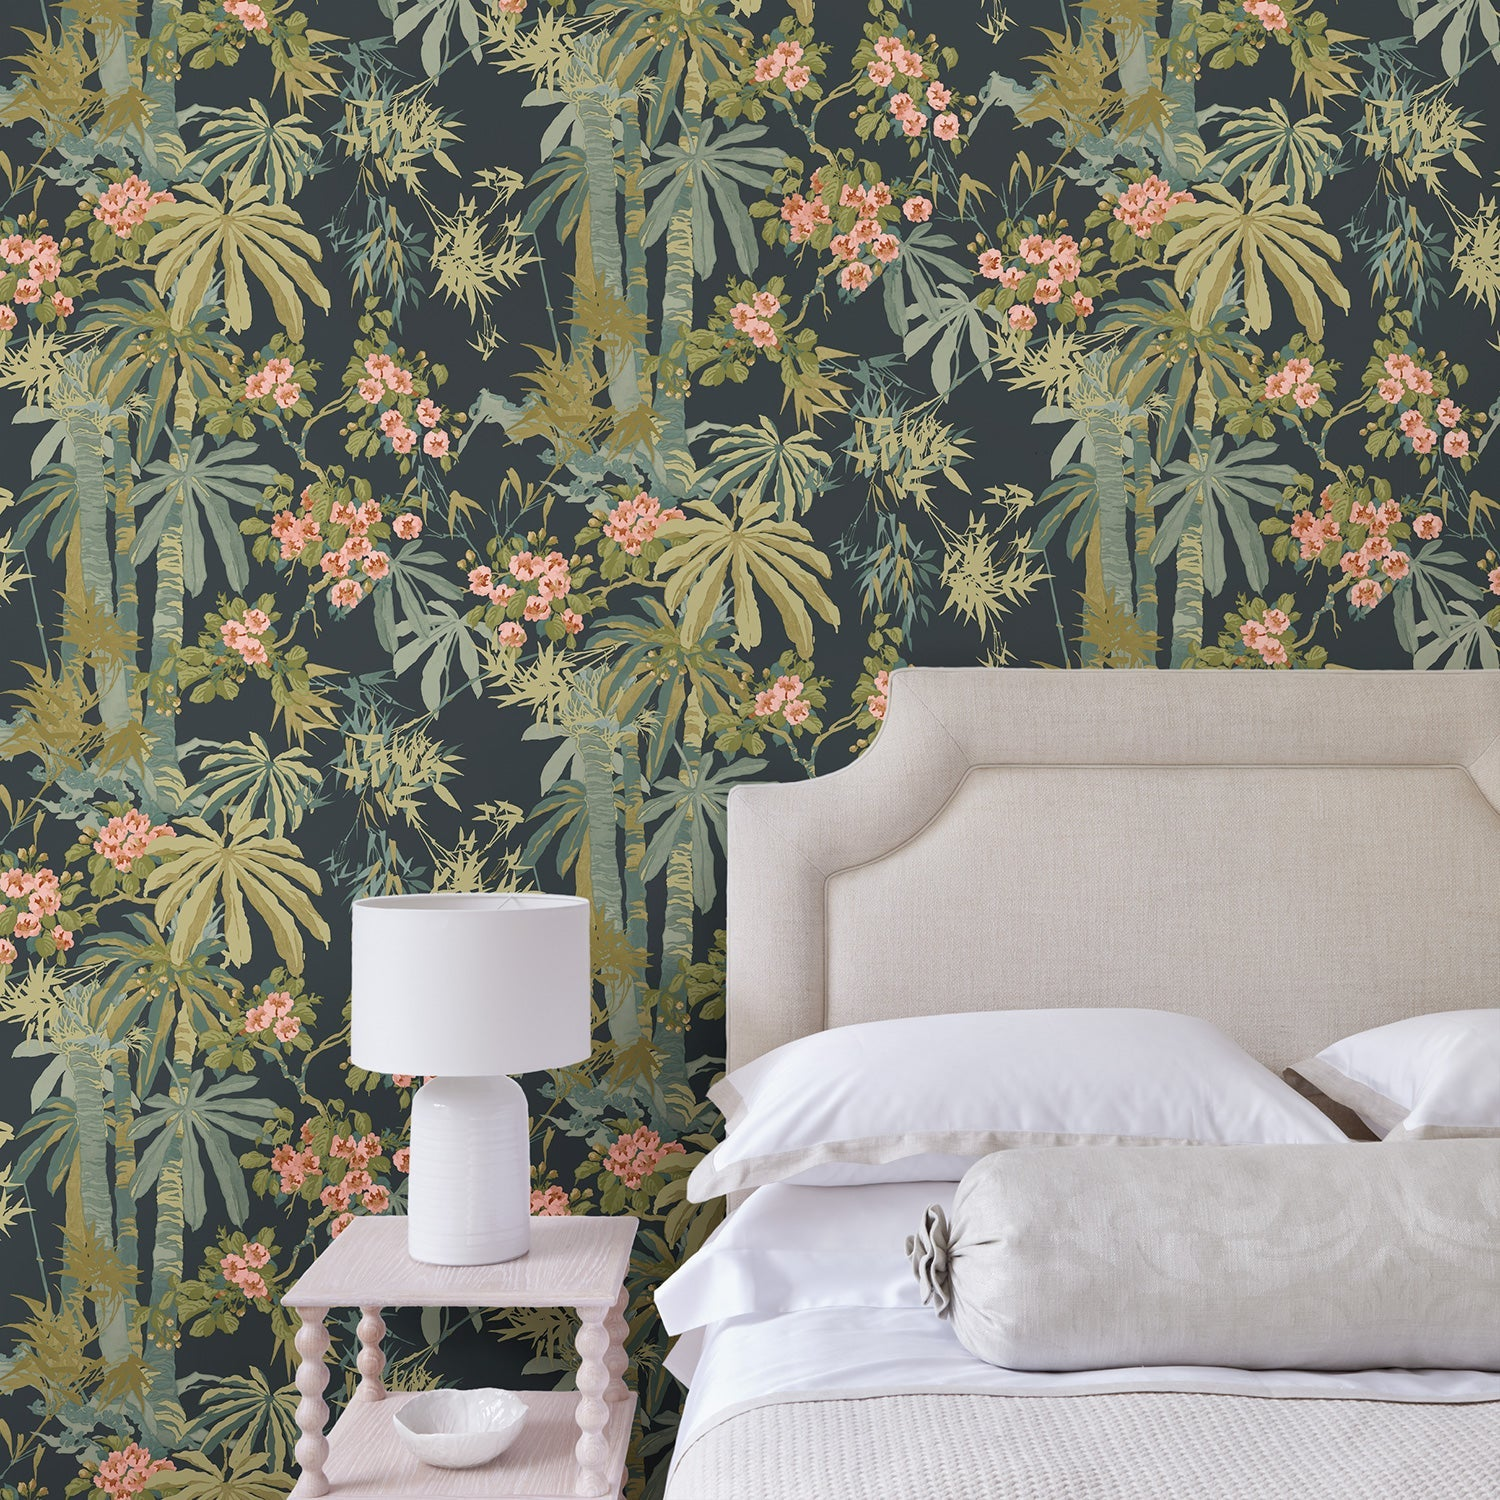 Bedroom featuring a Tropical wallpaper for walls with dark blue background and green palm trees